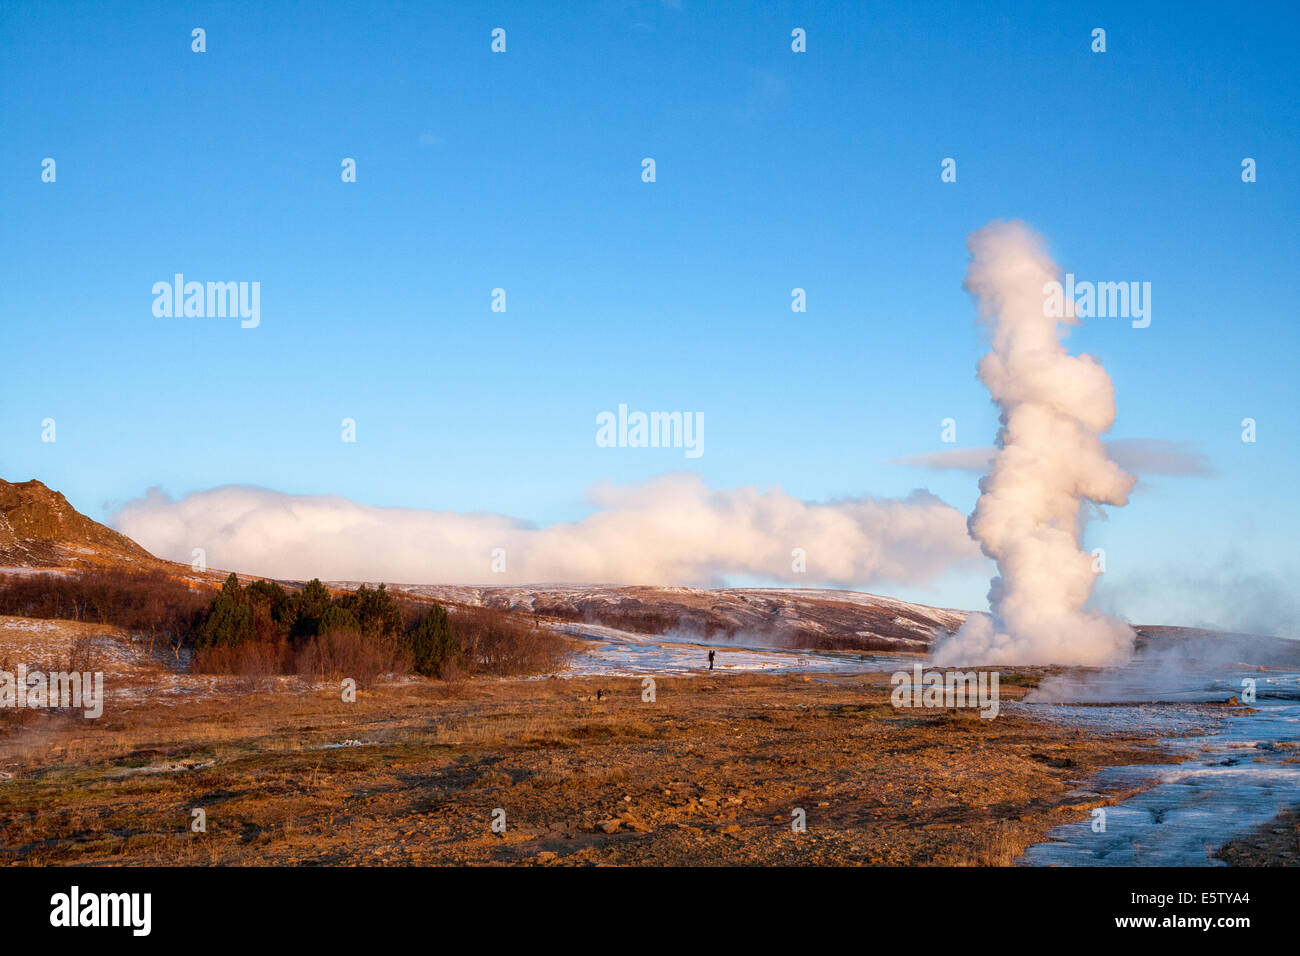 Geyser in Iceland erupting at dawn - Stock Image